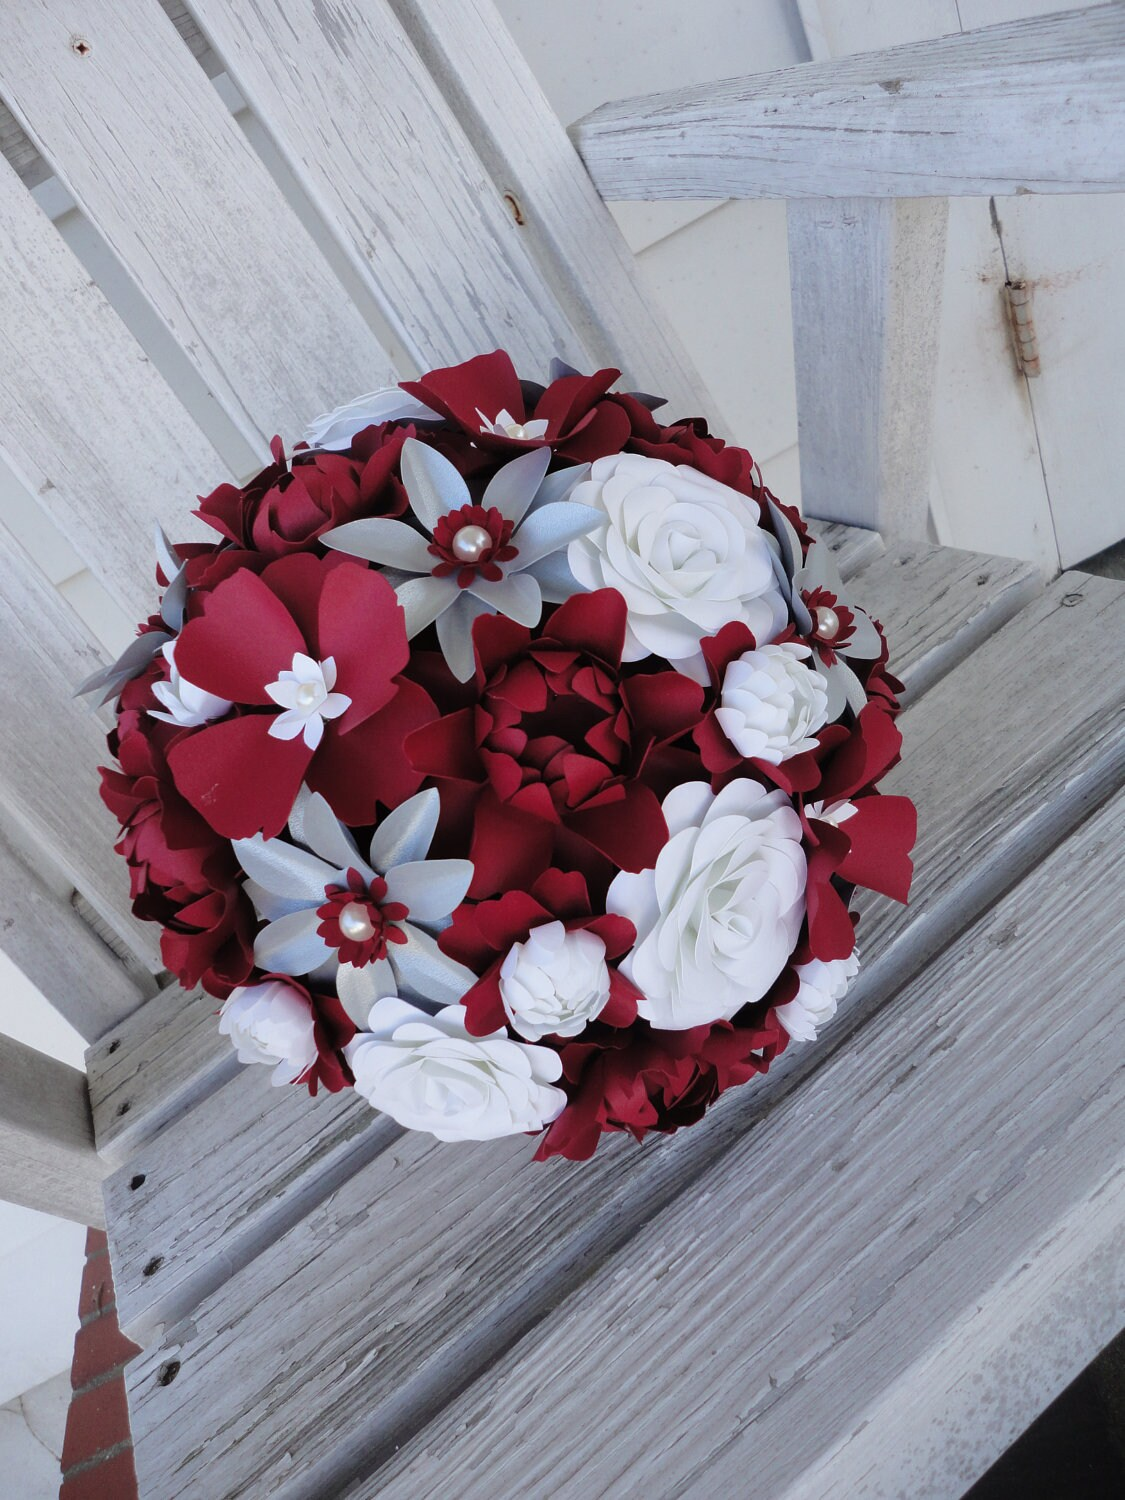 paper wedding flowers large bridal bouquet red by poshstudios. Black Bedroom Furniture Sets. Home Design Ideas